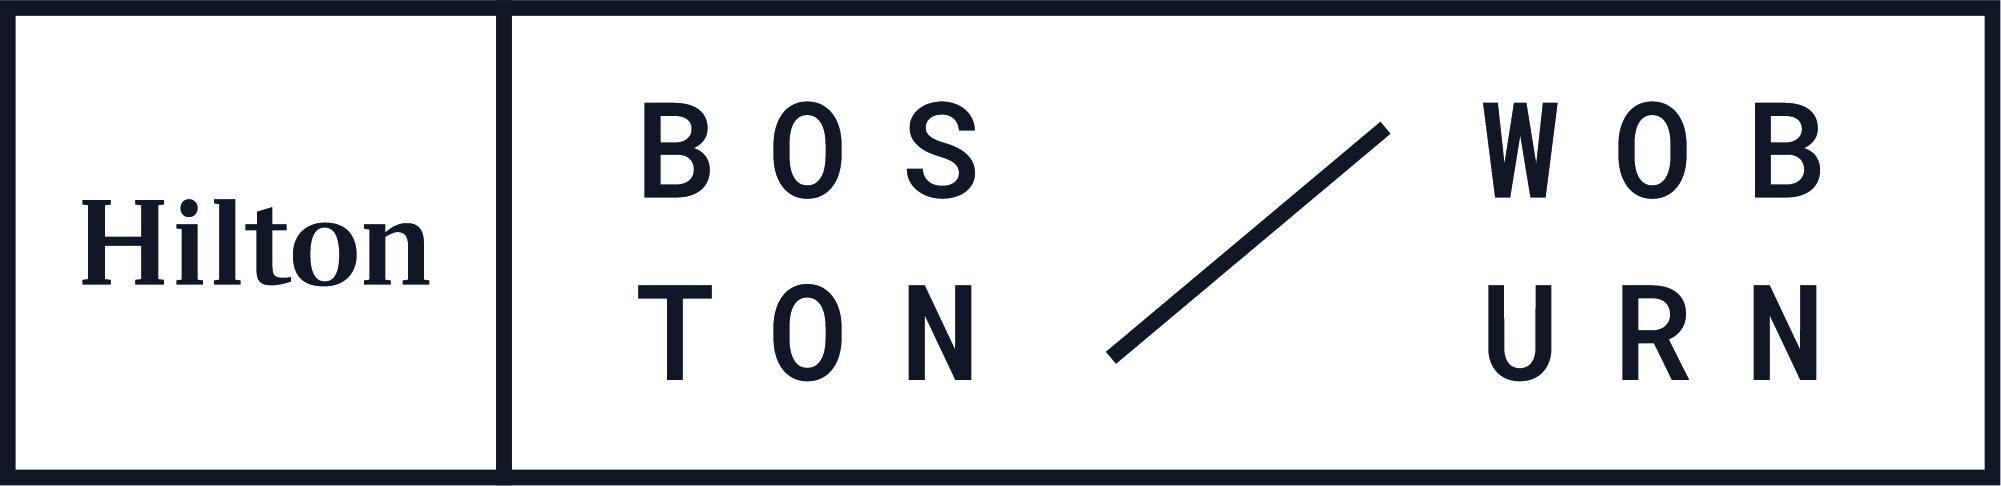 Hilton Boston Woburn Logo